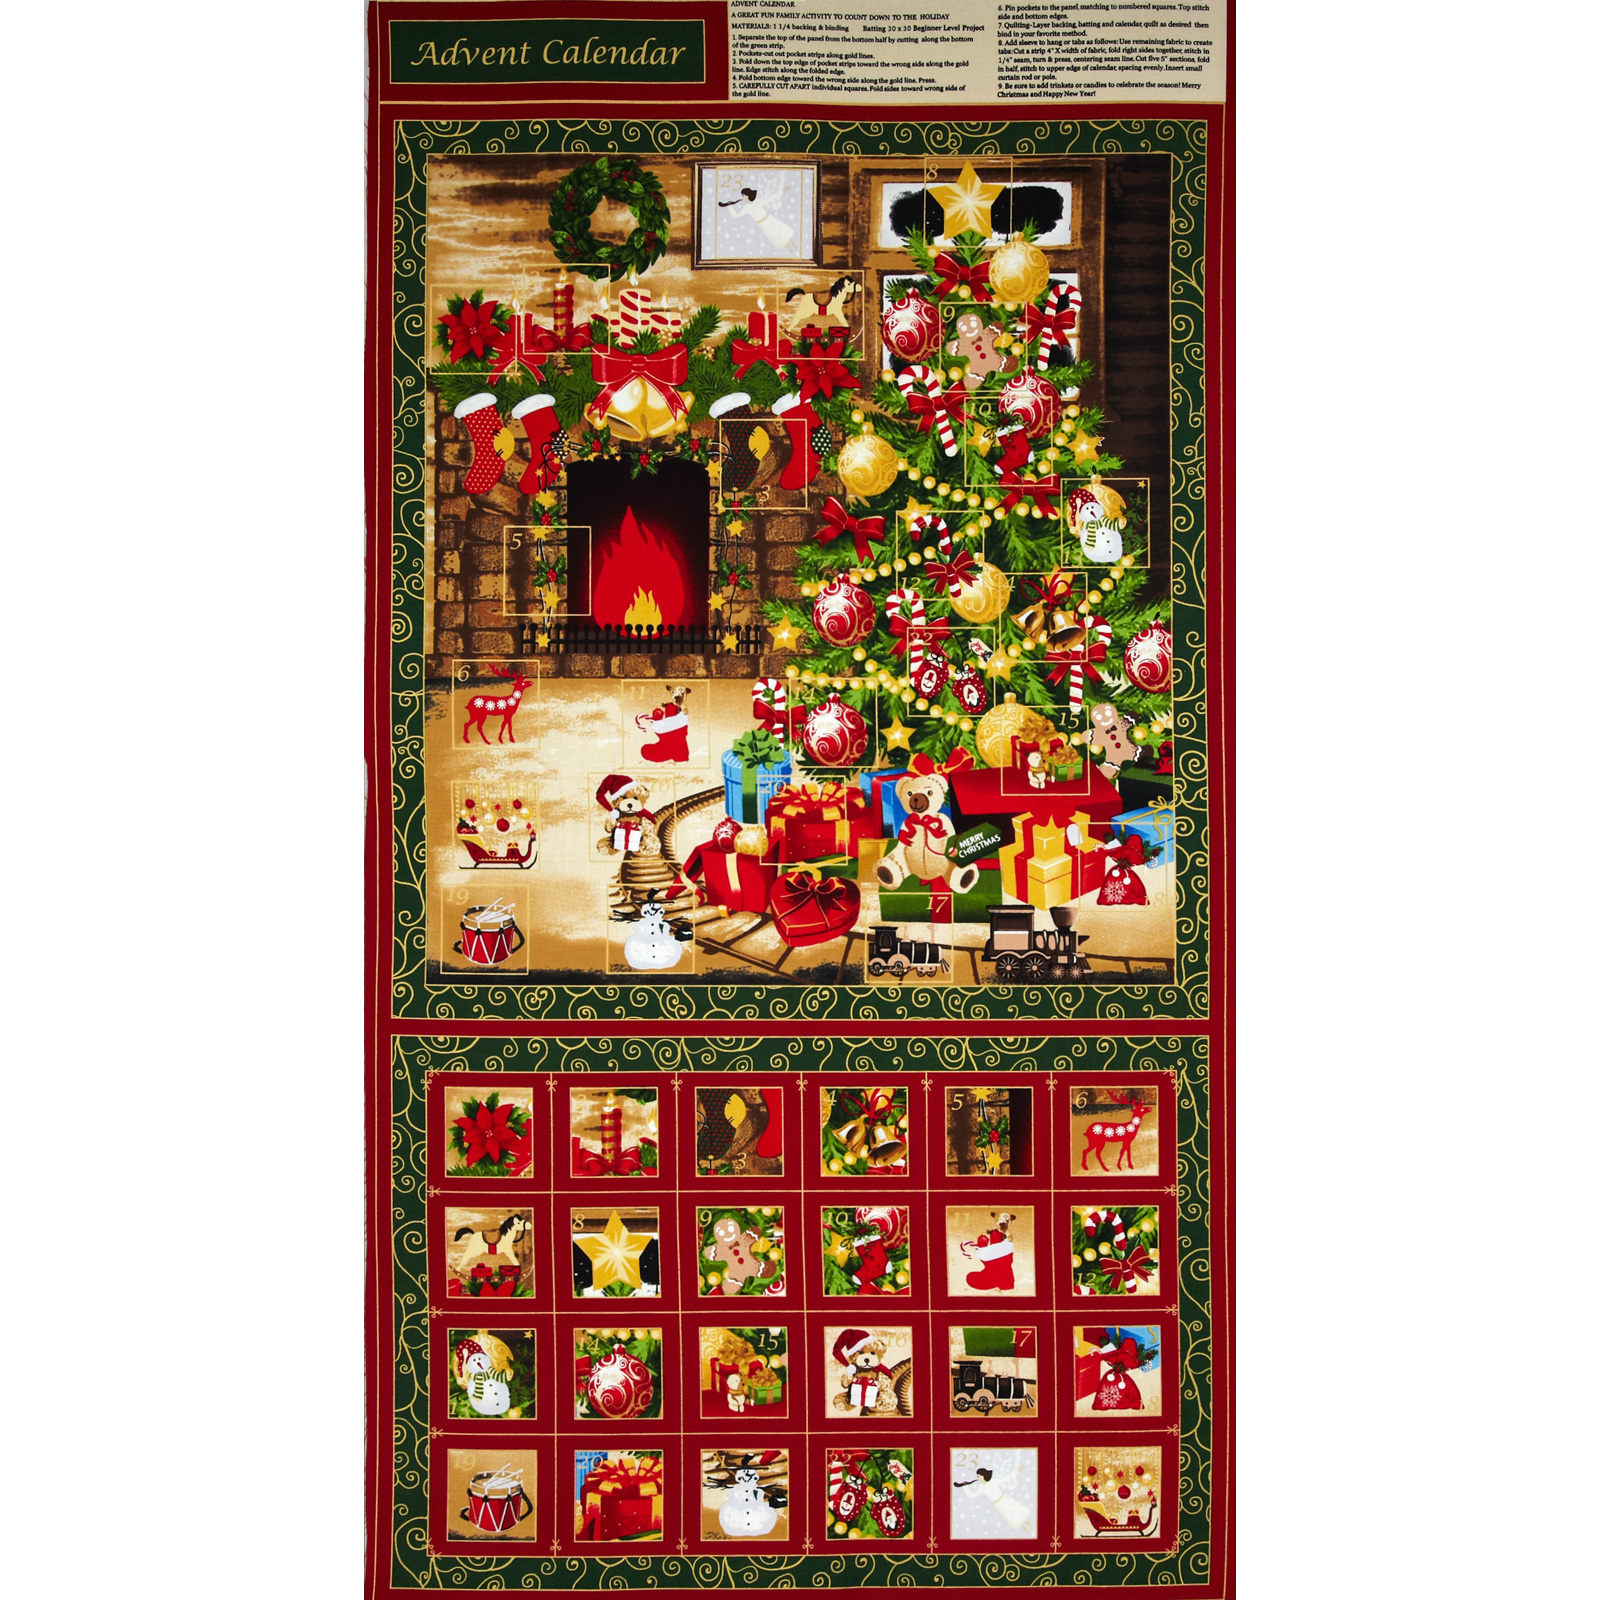 Season's Greetings Advent Calendar Tree Panel Fabric